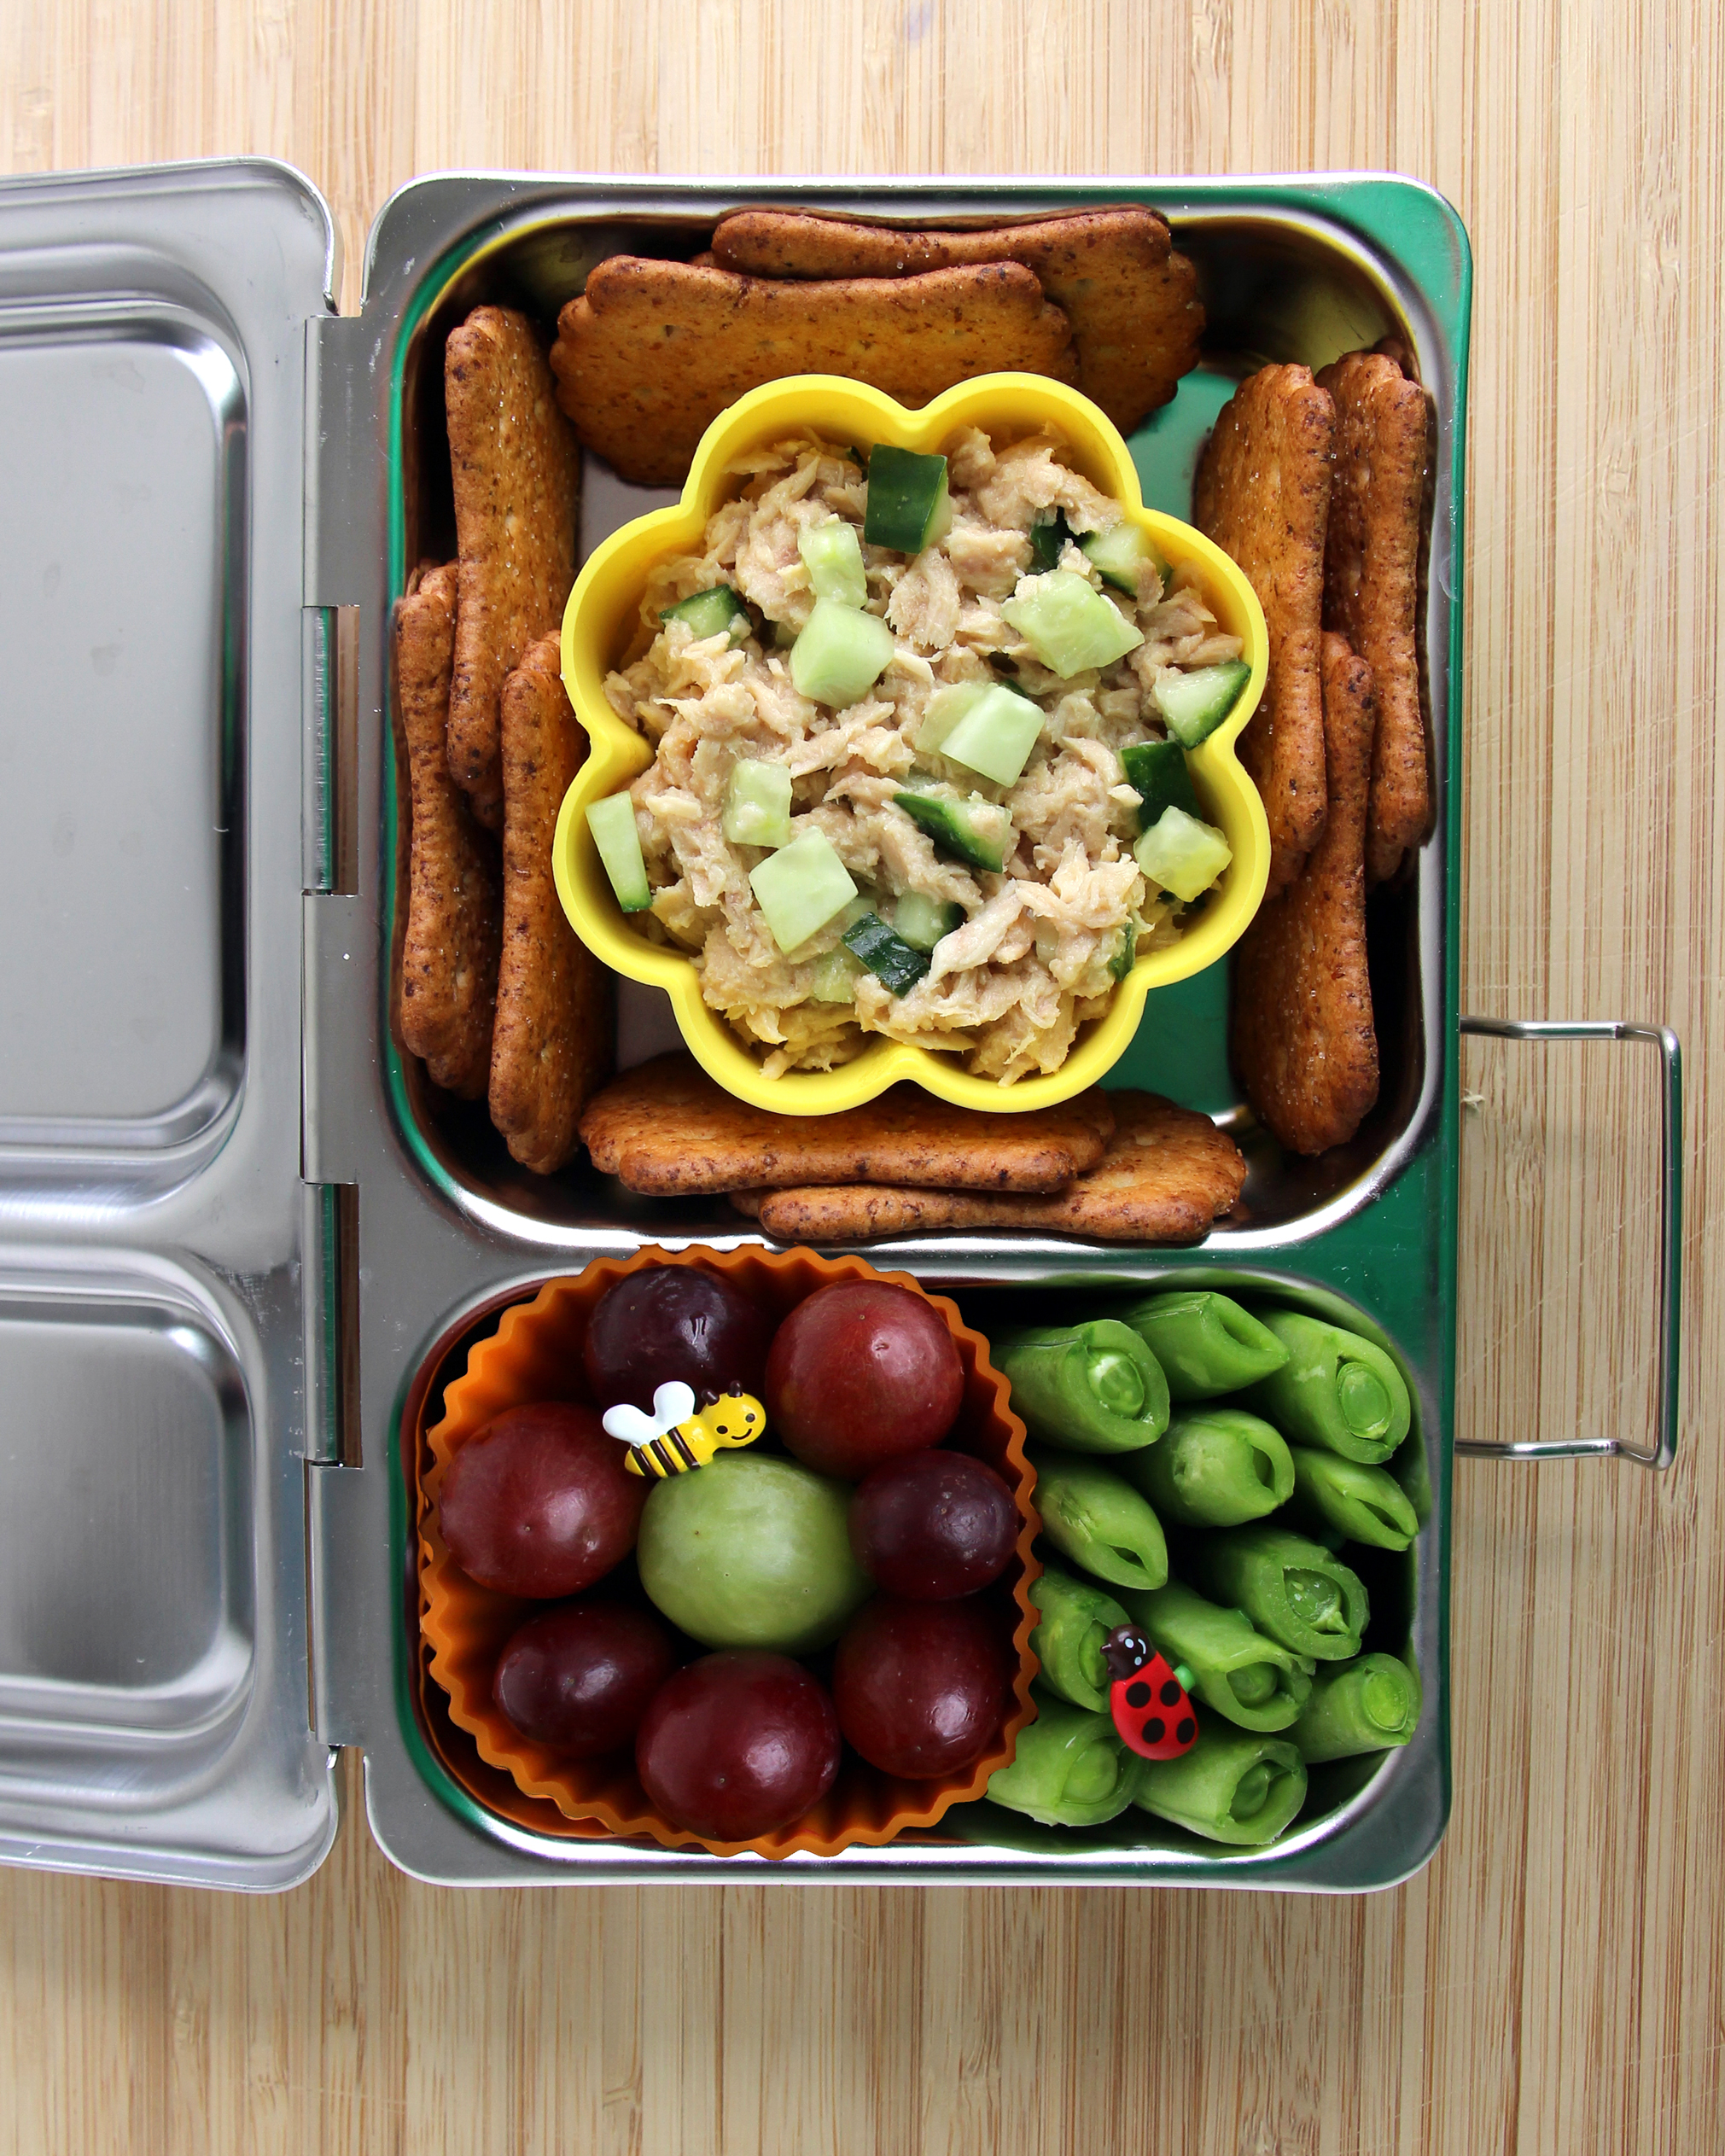 bento box tuna flower peas grapes